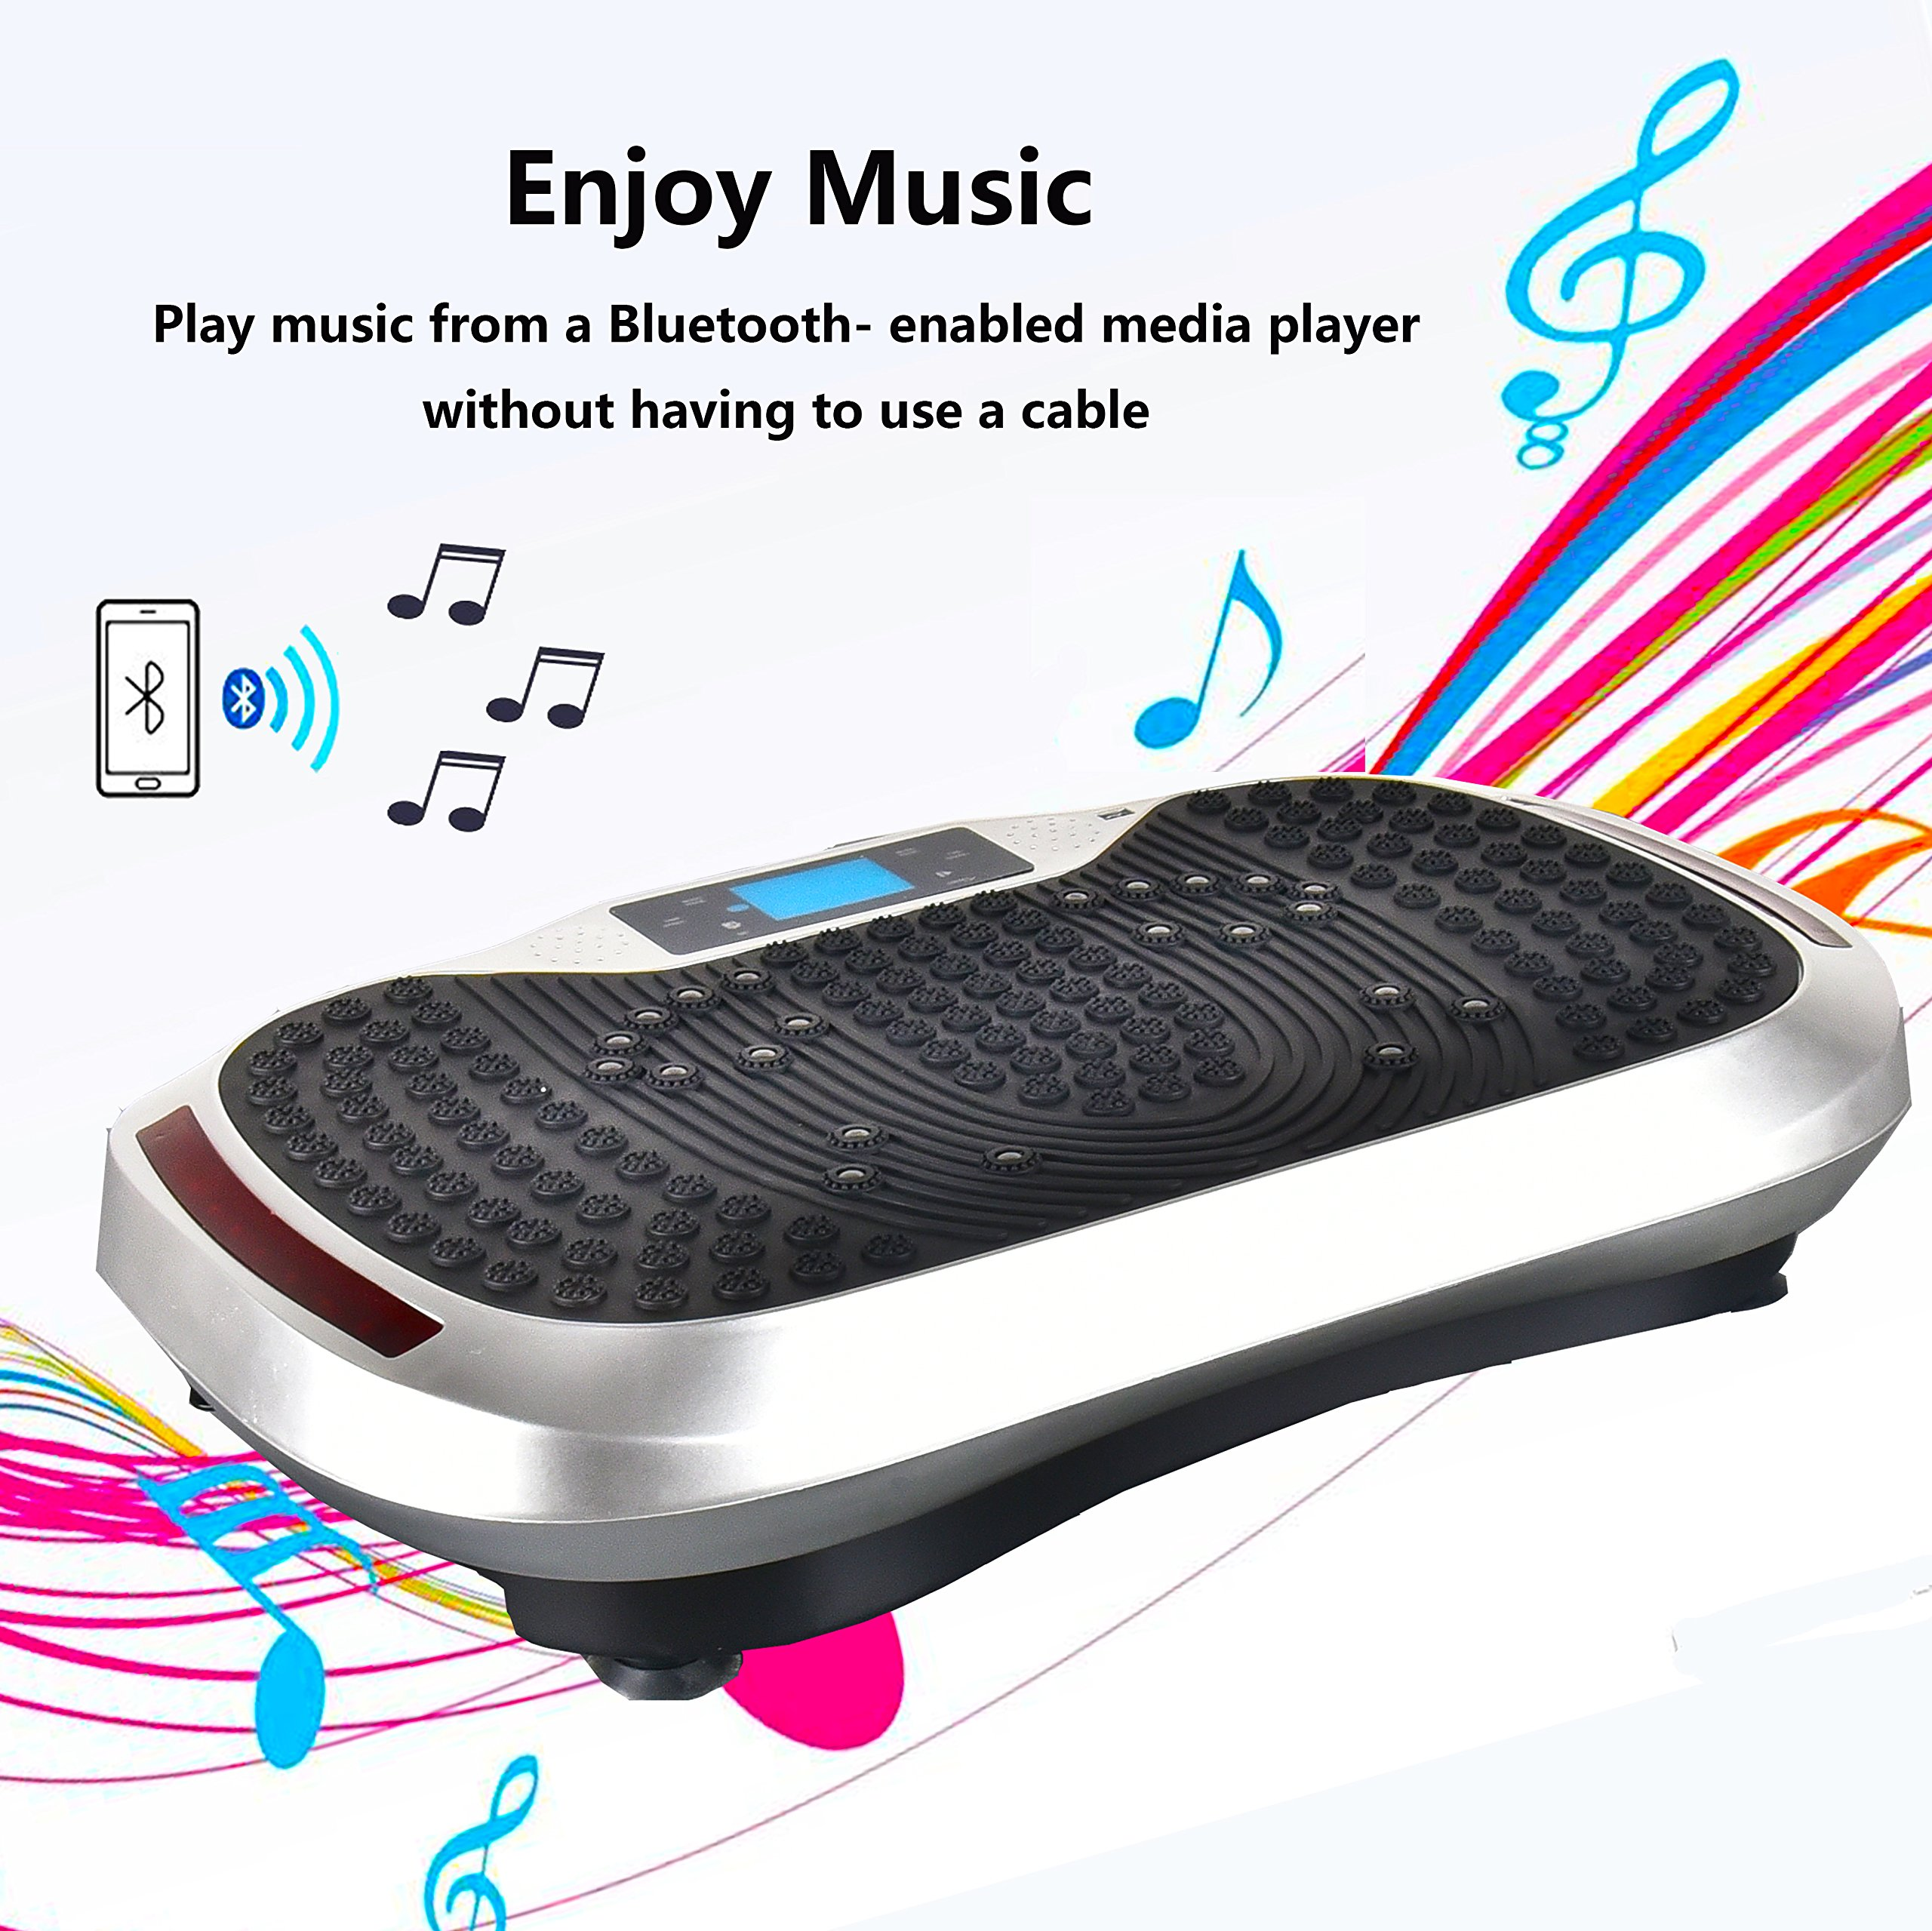 Reliancer Built-in Music Player Fitness Vibration Platform Whole Full Body Shaped Crazy Fit Plate Massage Workout Trainer Exercise Machine Plate w/Integrated USB Port&LED Light (W/Music-Silver) by Reliancer (Image #2)